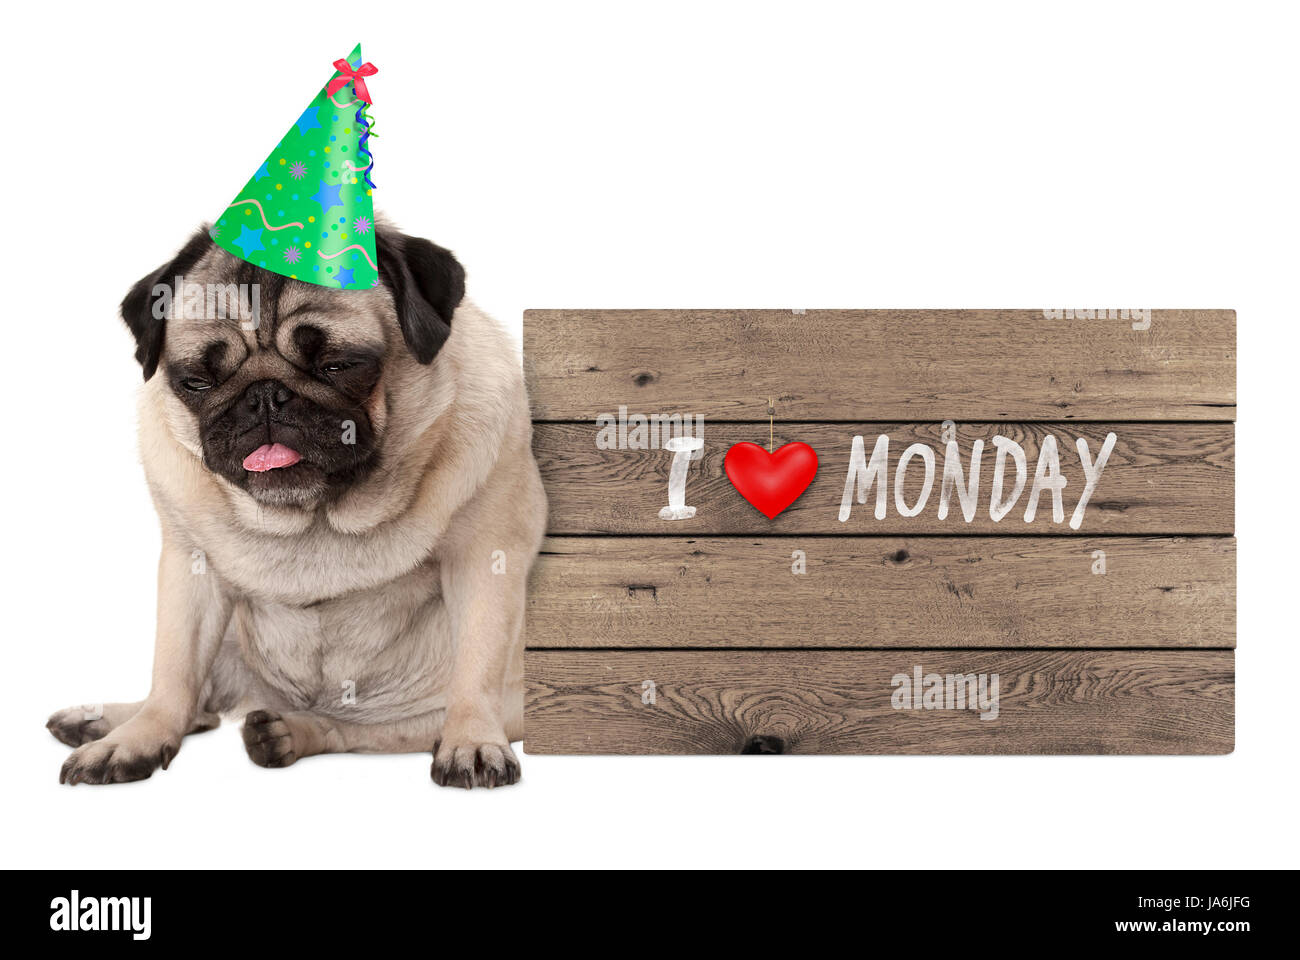 fed up pug puppy dog wearing party hat, sitting down next to wooden sign with text I love monday, isolated on white - Stock Image